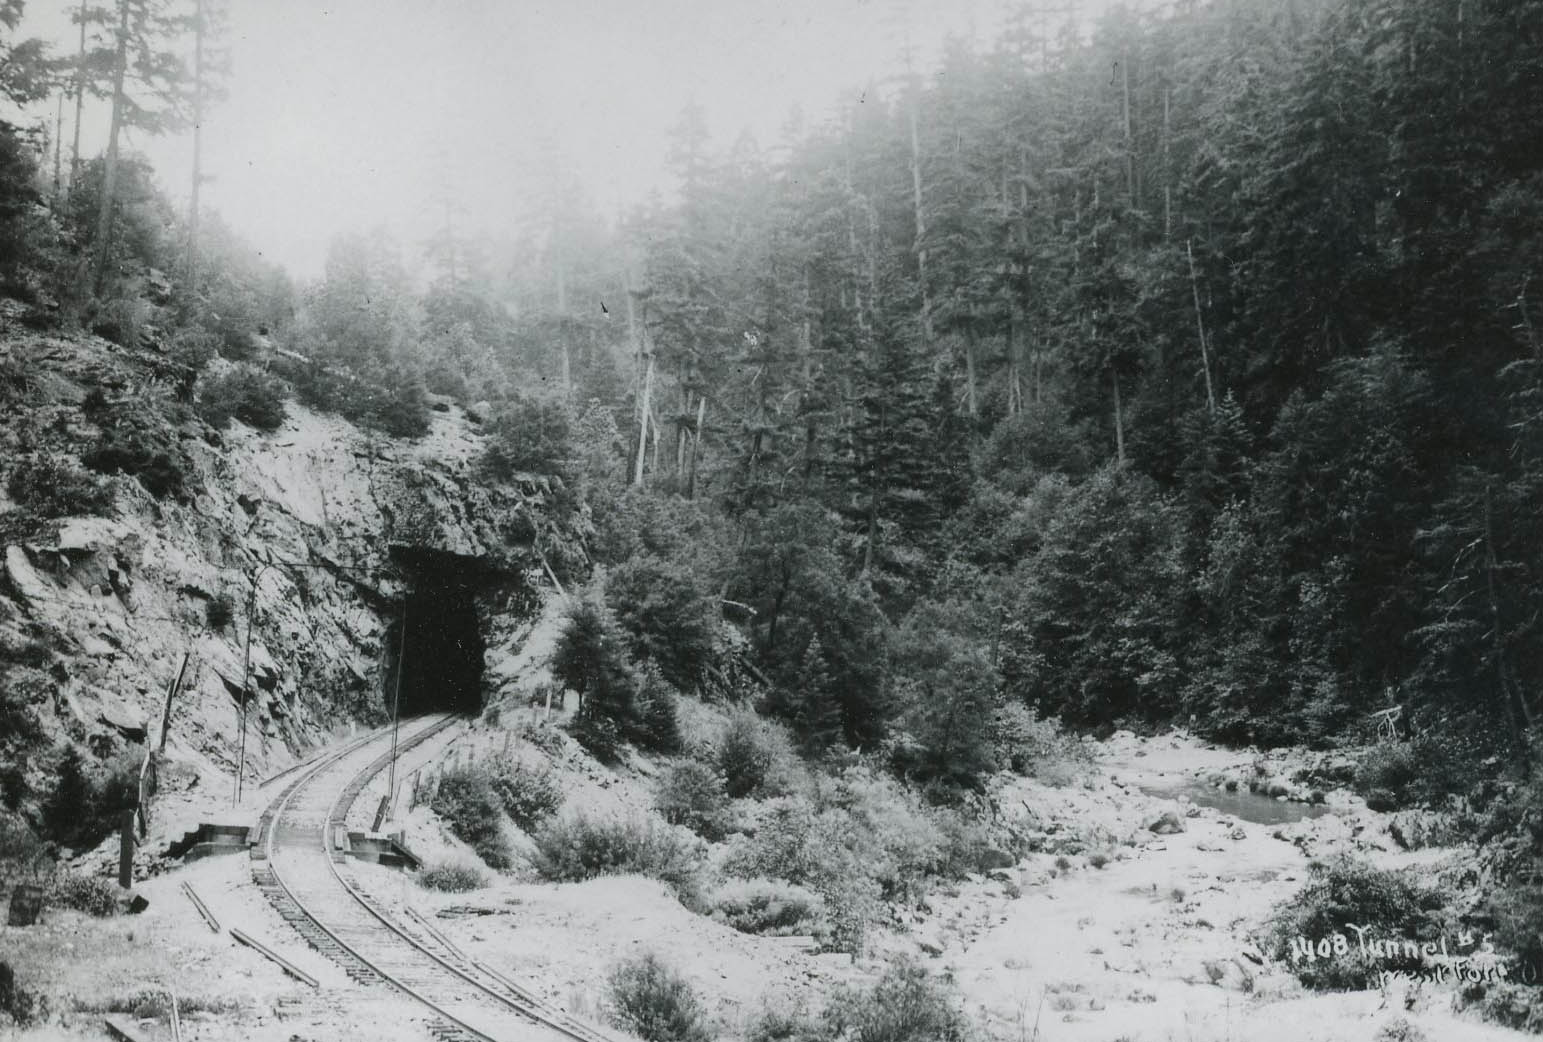 Tunnel 5 on the SP railroad near West Fork over Cow Creek